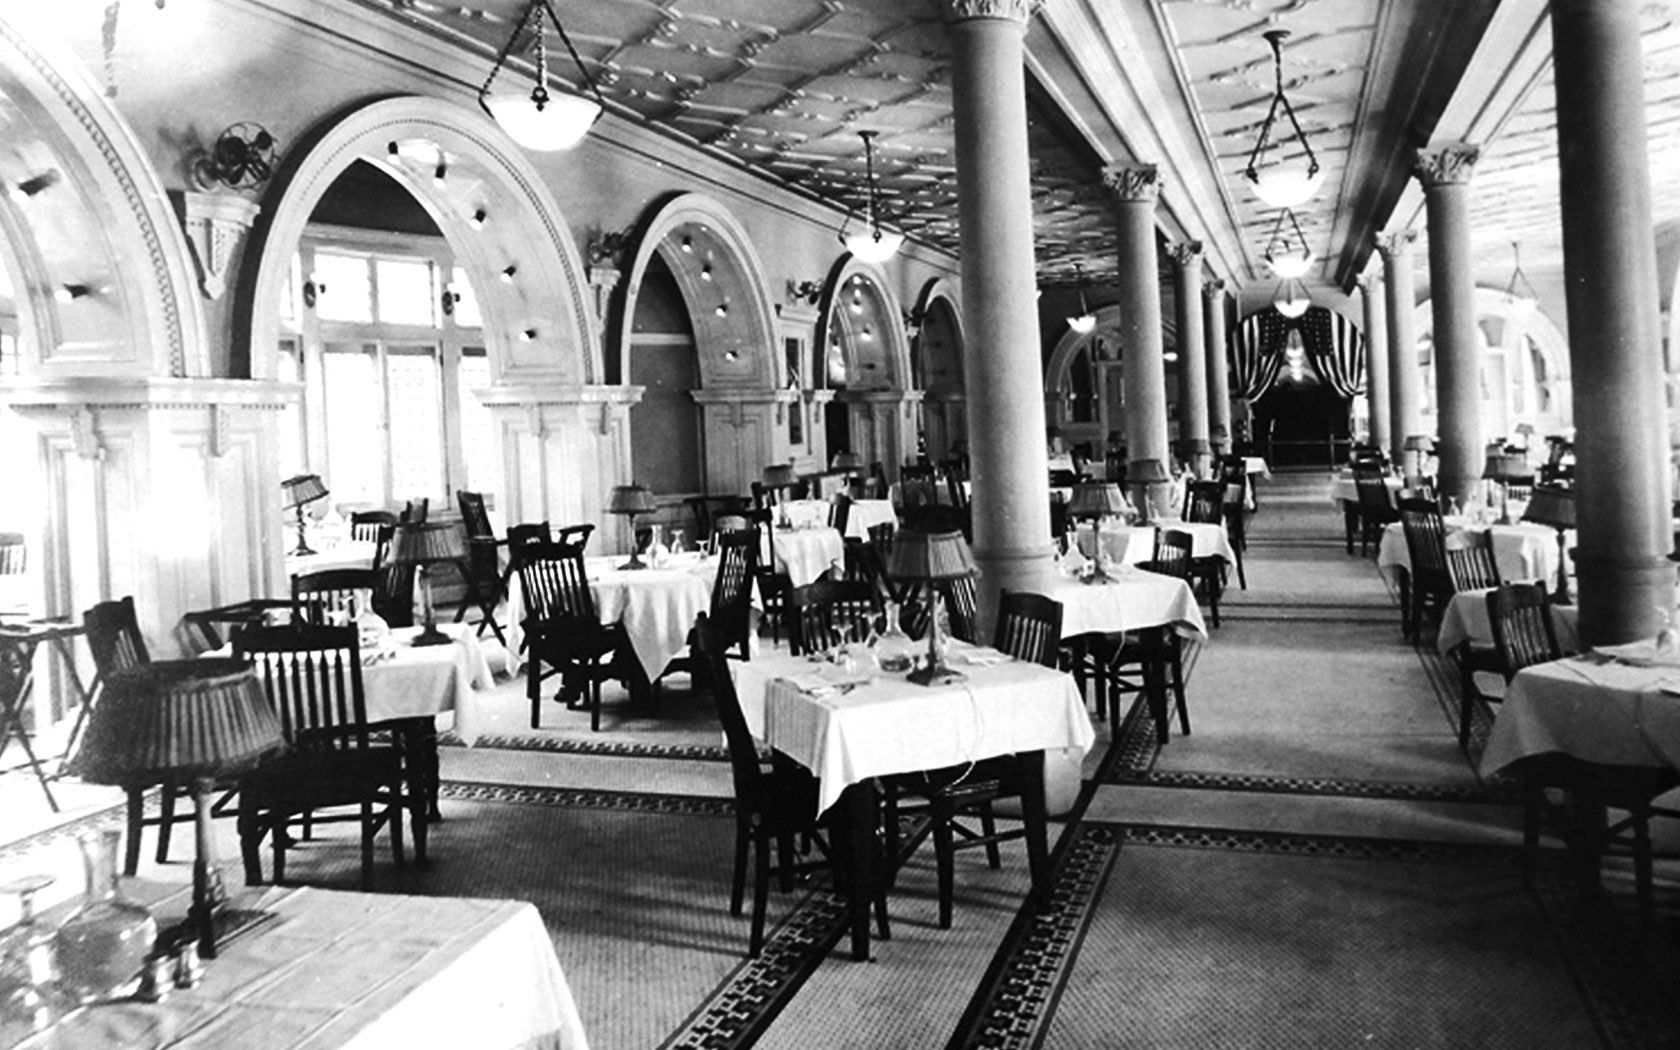 an old photograph of the dining area inside the hotel